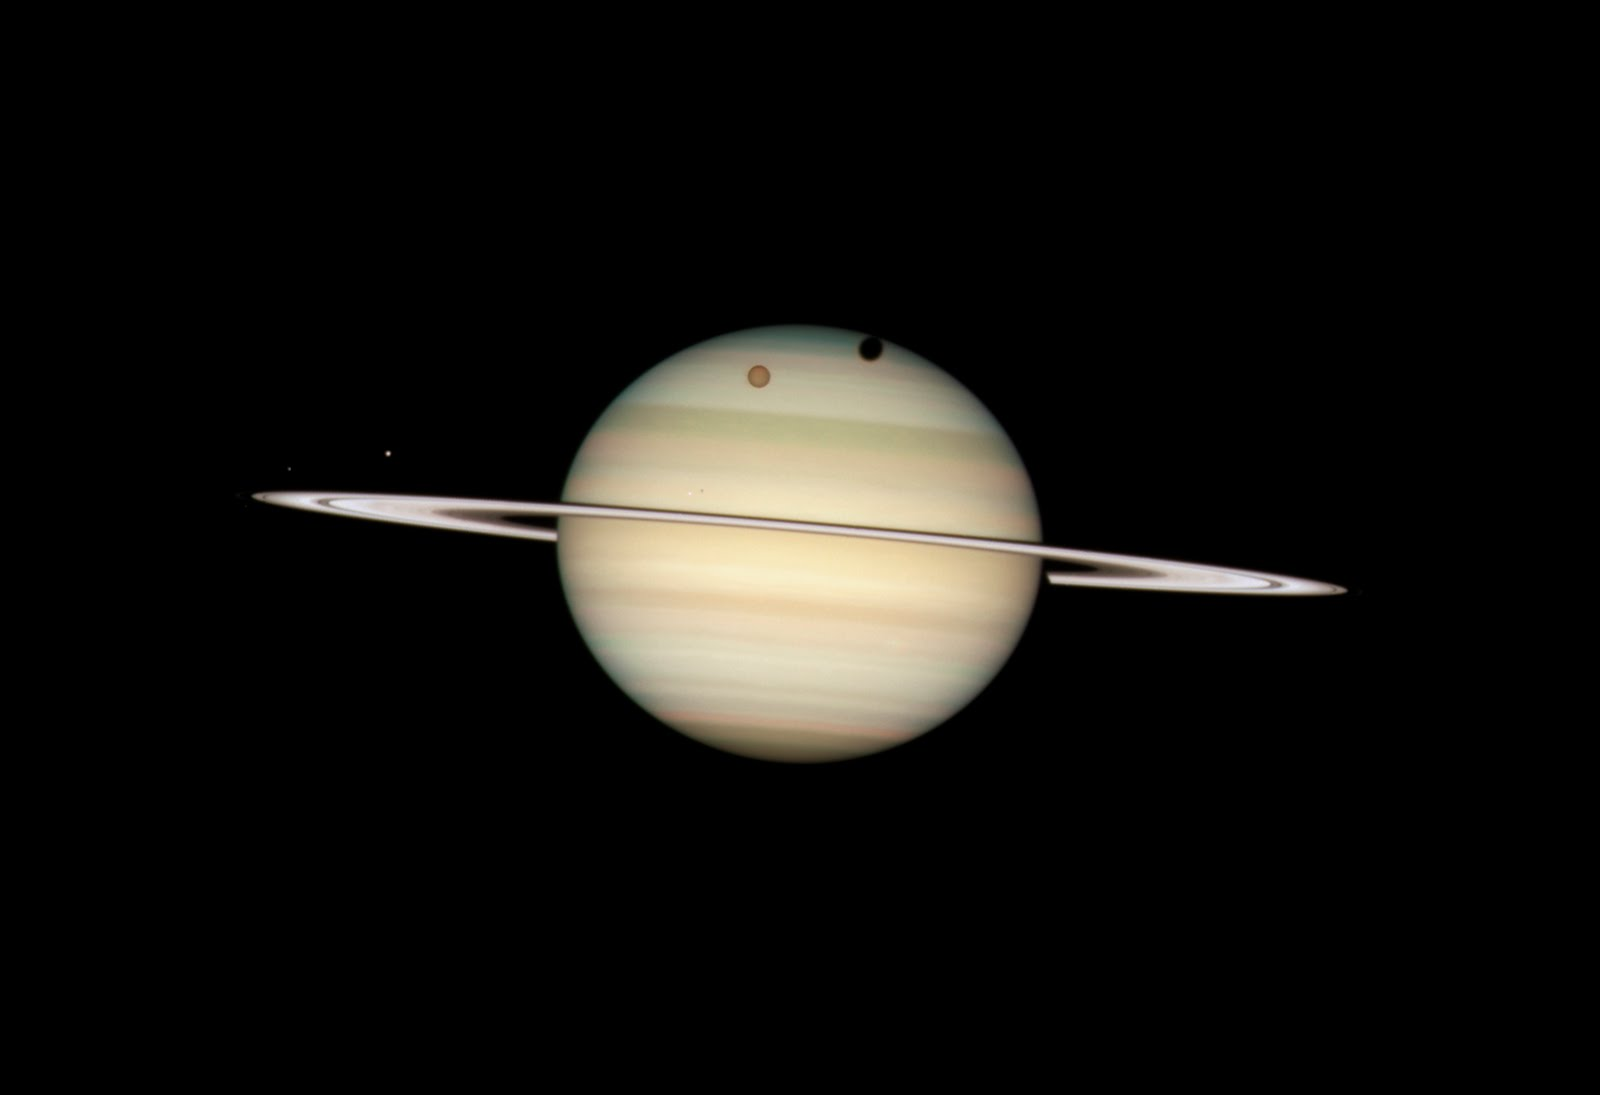 Space Planet Saturn